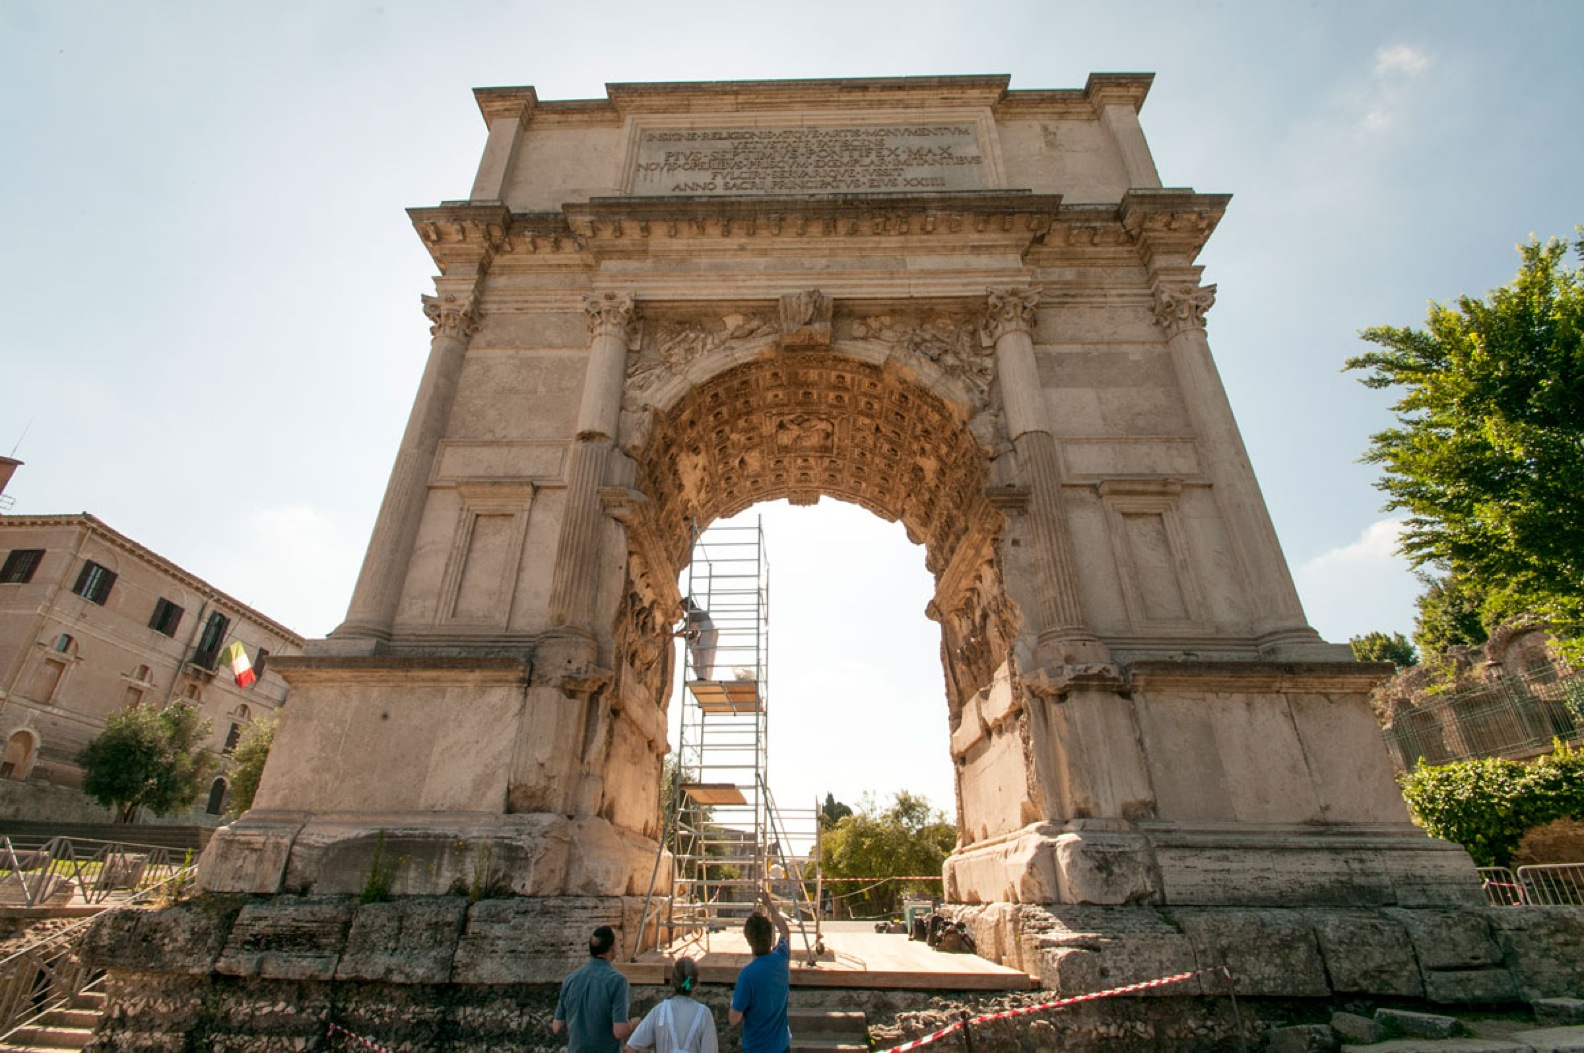 The Arch of Titus in the Roman forum